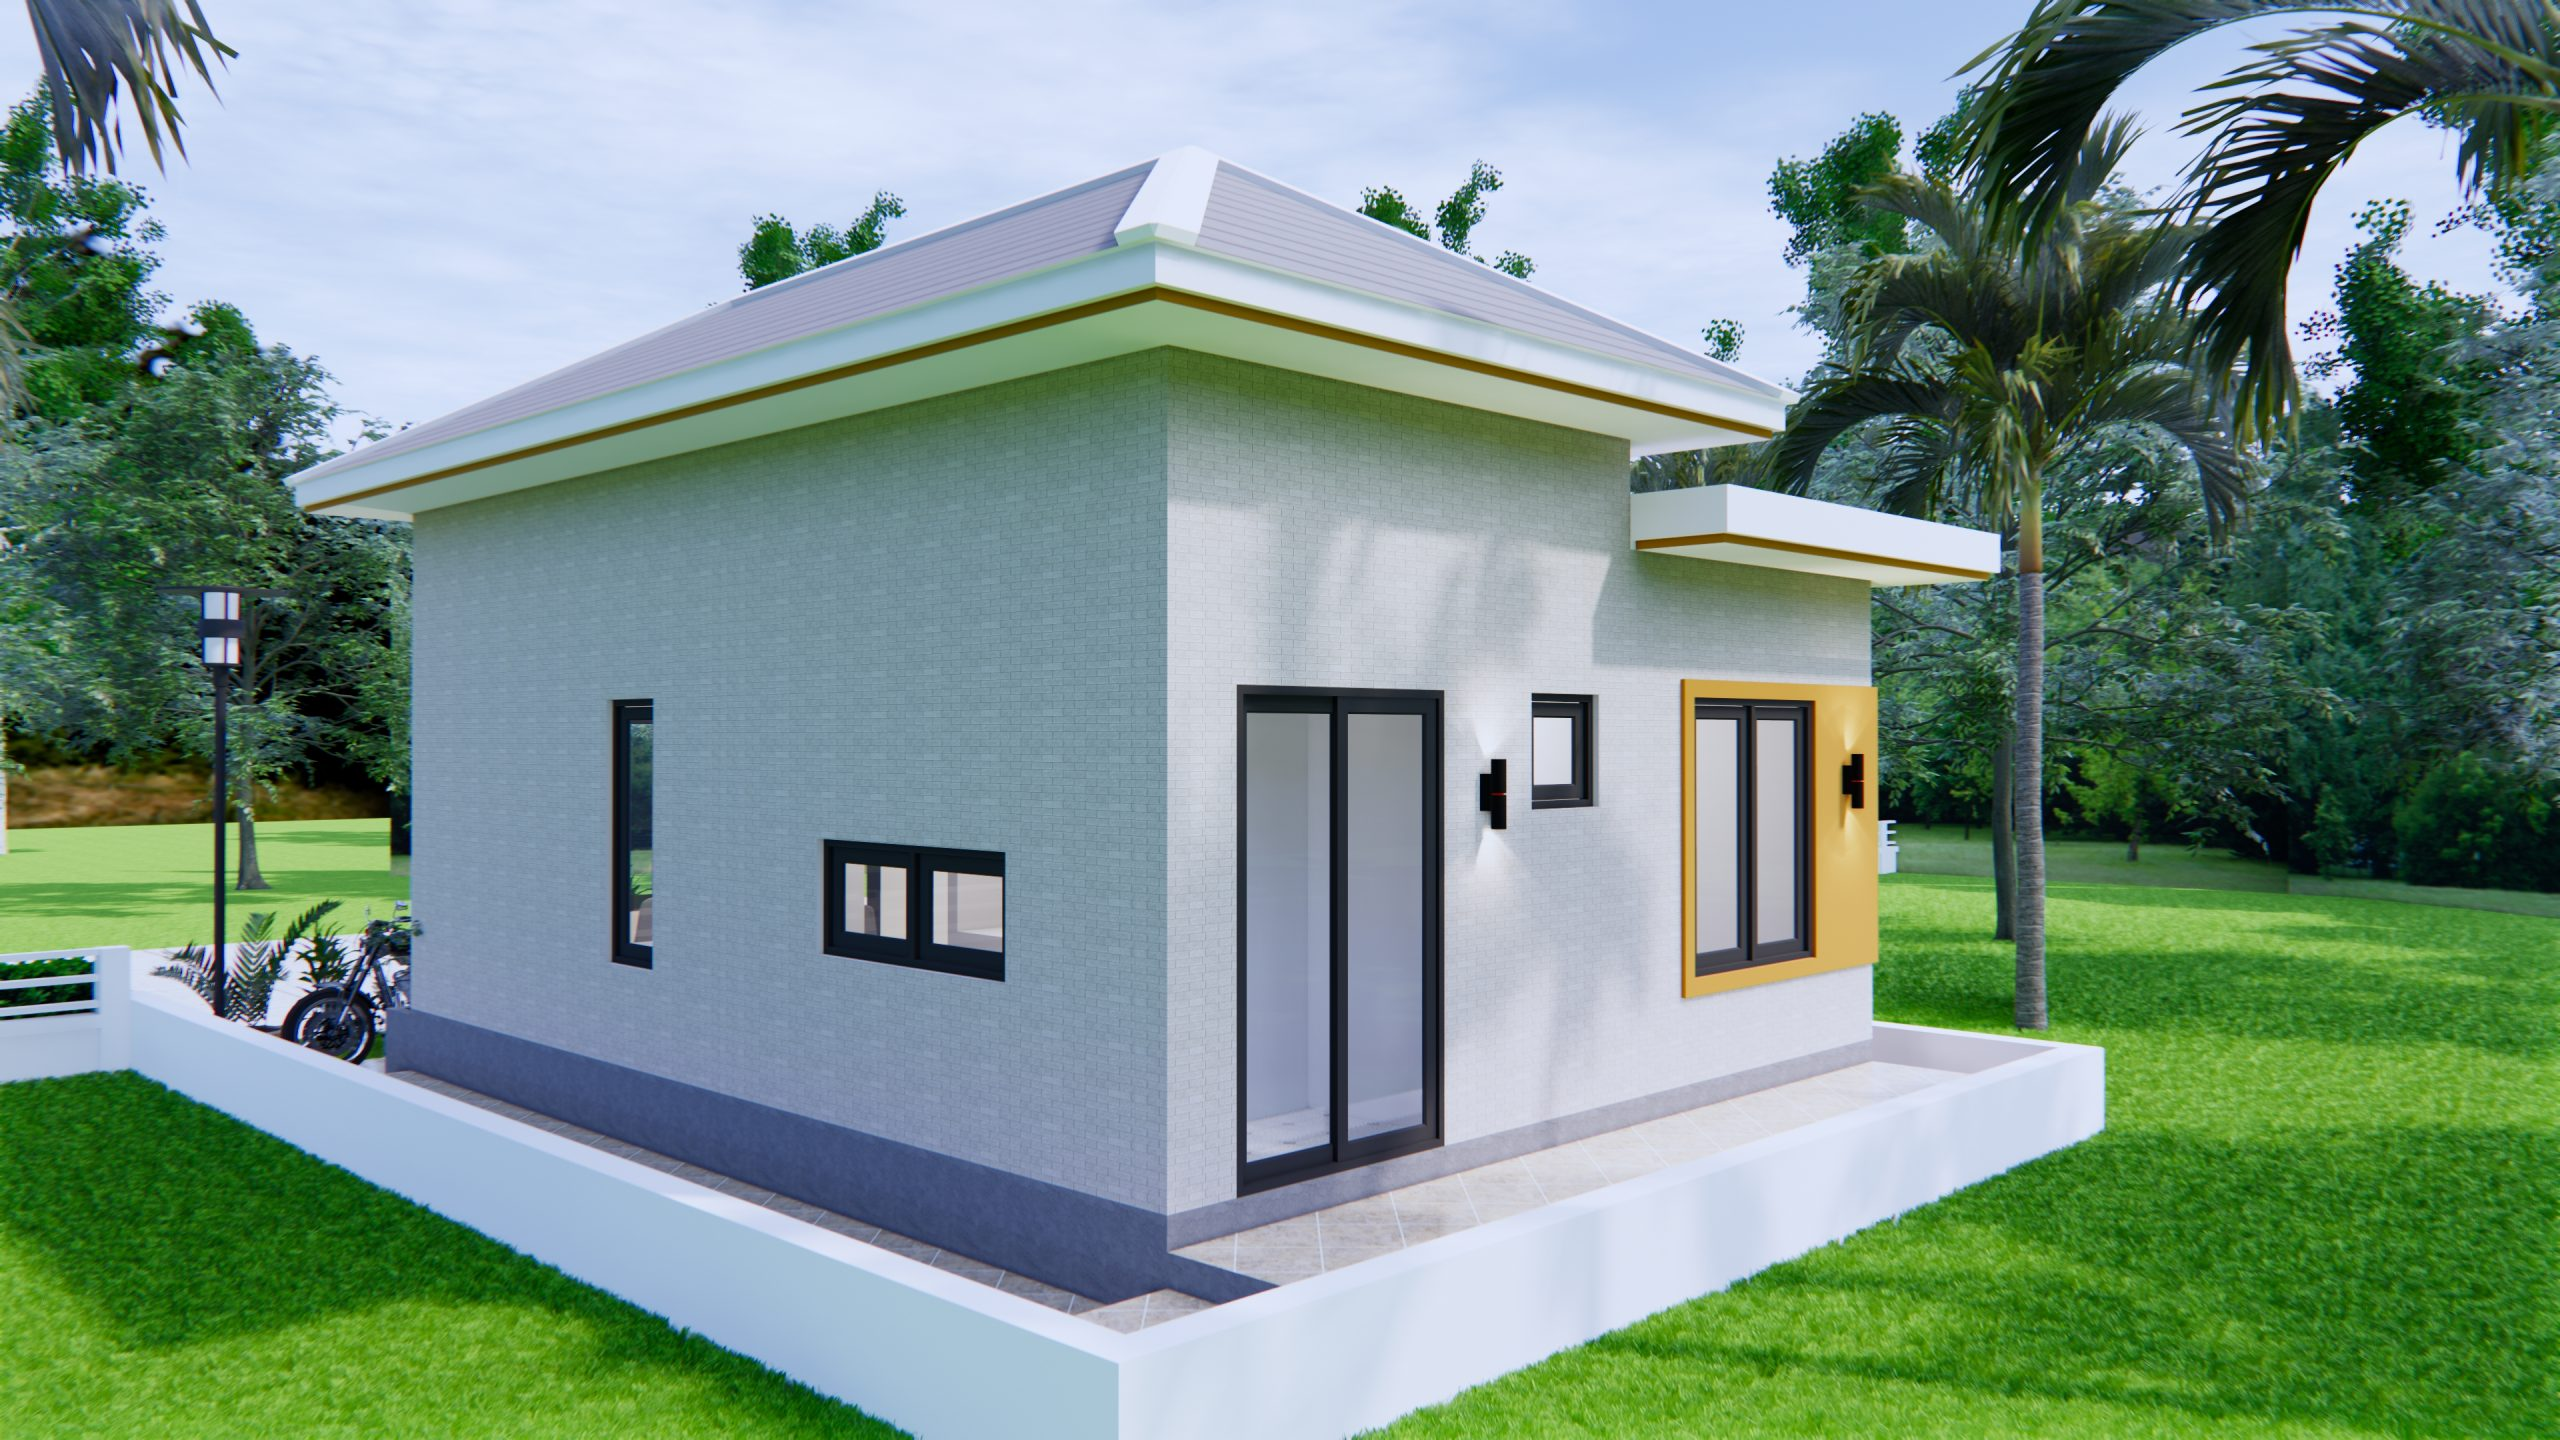 Single Story House Plans 6x8 Meter 20x27 Feet 2 Beds 7